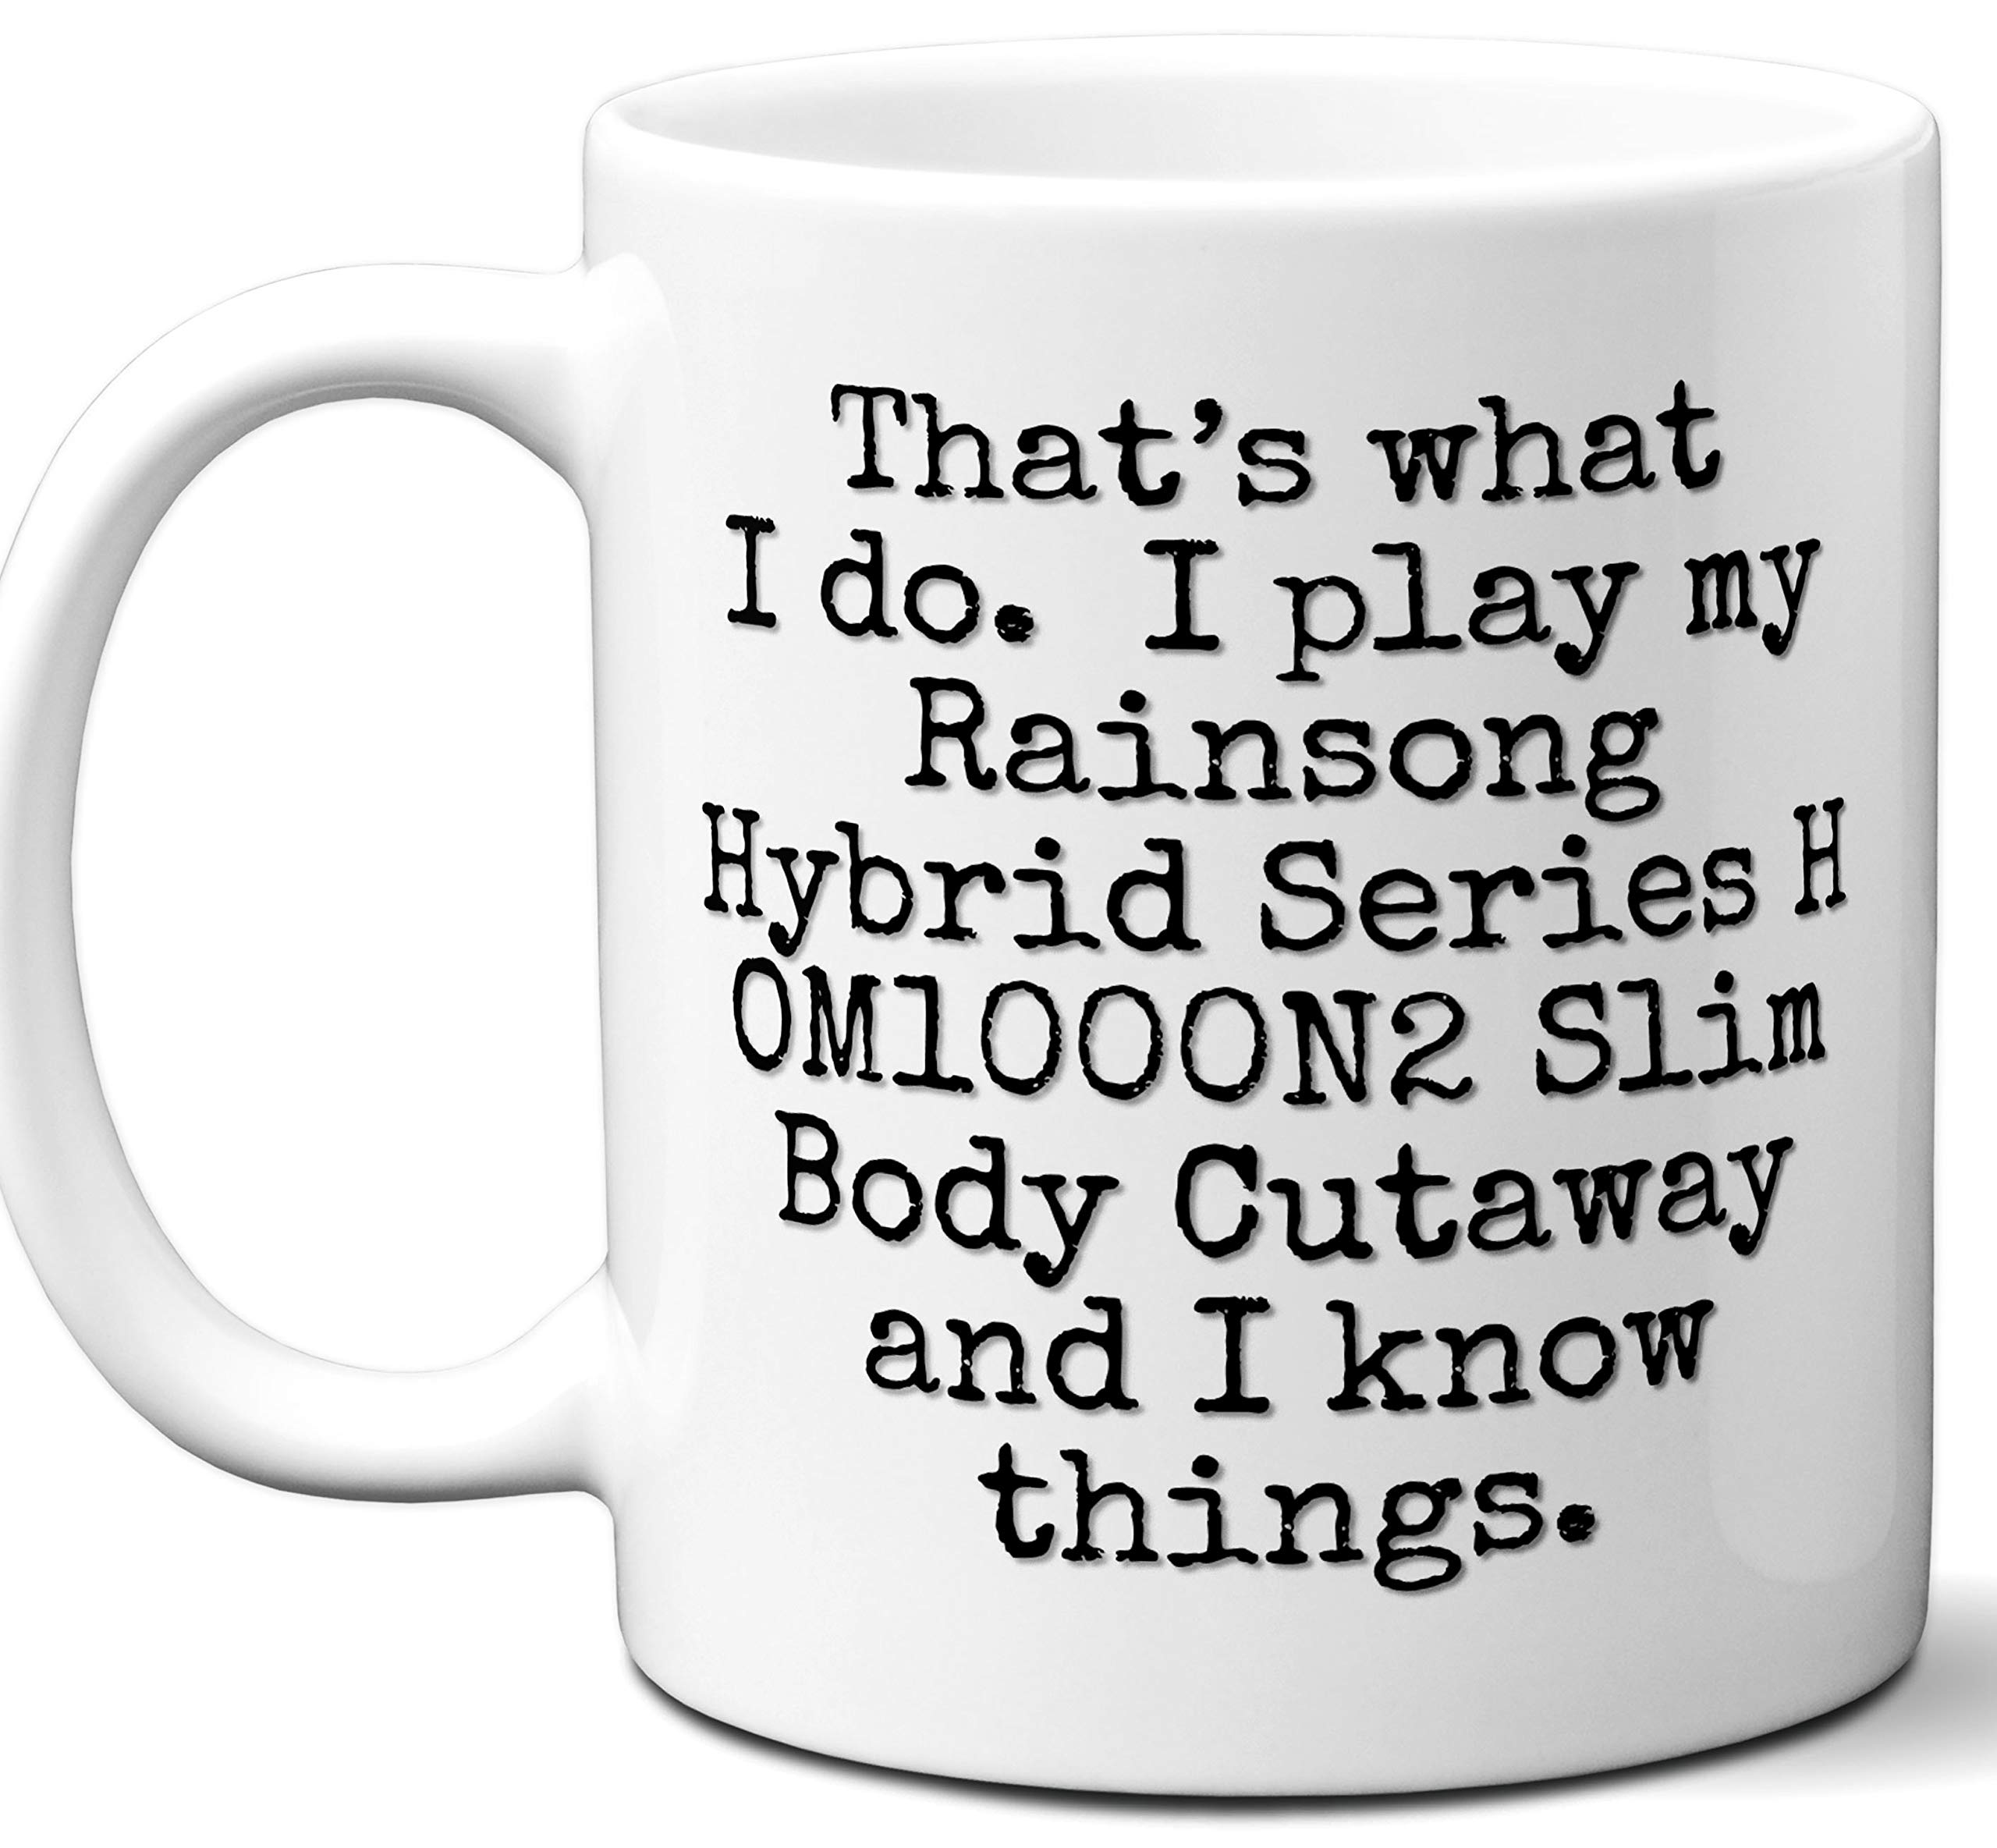 Guitar Gifts Mug. Rainsong Hybrid Series H OM1000N2 Slim Body Cutaway Guitar Players Lover Accessories Music Teacher Lover Him Her Funny Dad Men Women Card Pick Musician Acoustic Unique by Ombura